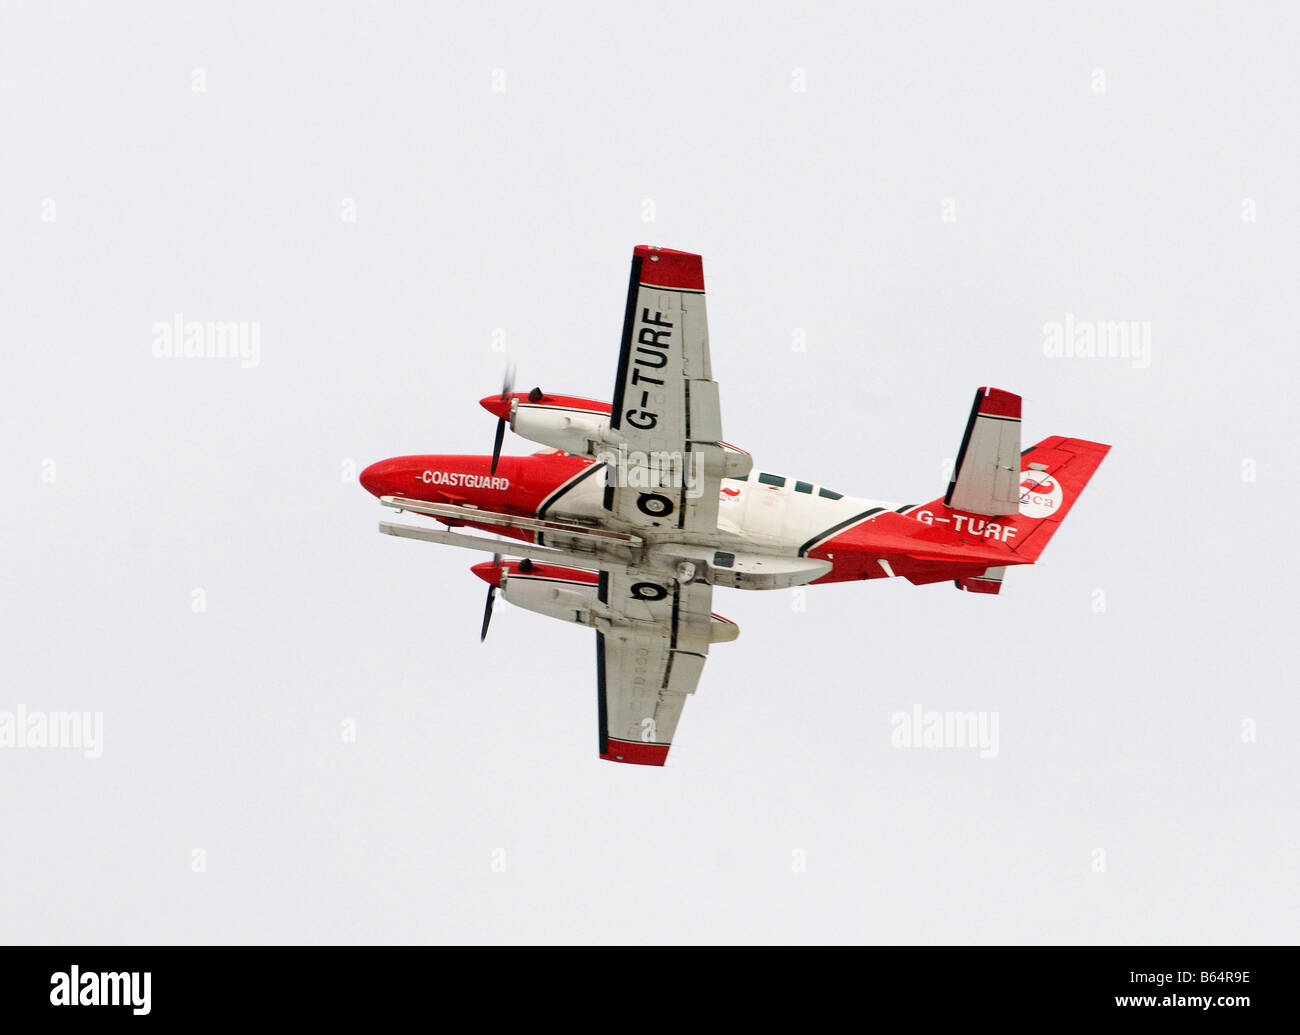 A Reims-Cessna F406 Caravan II leaving Inverness Dalcross Airport in the Scottish Highlands  SCO 2007 - Stock Image